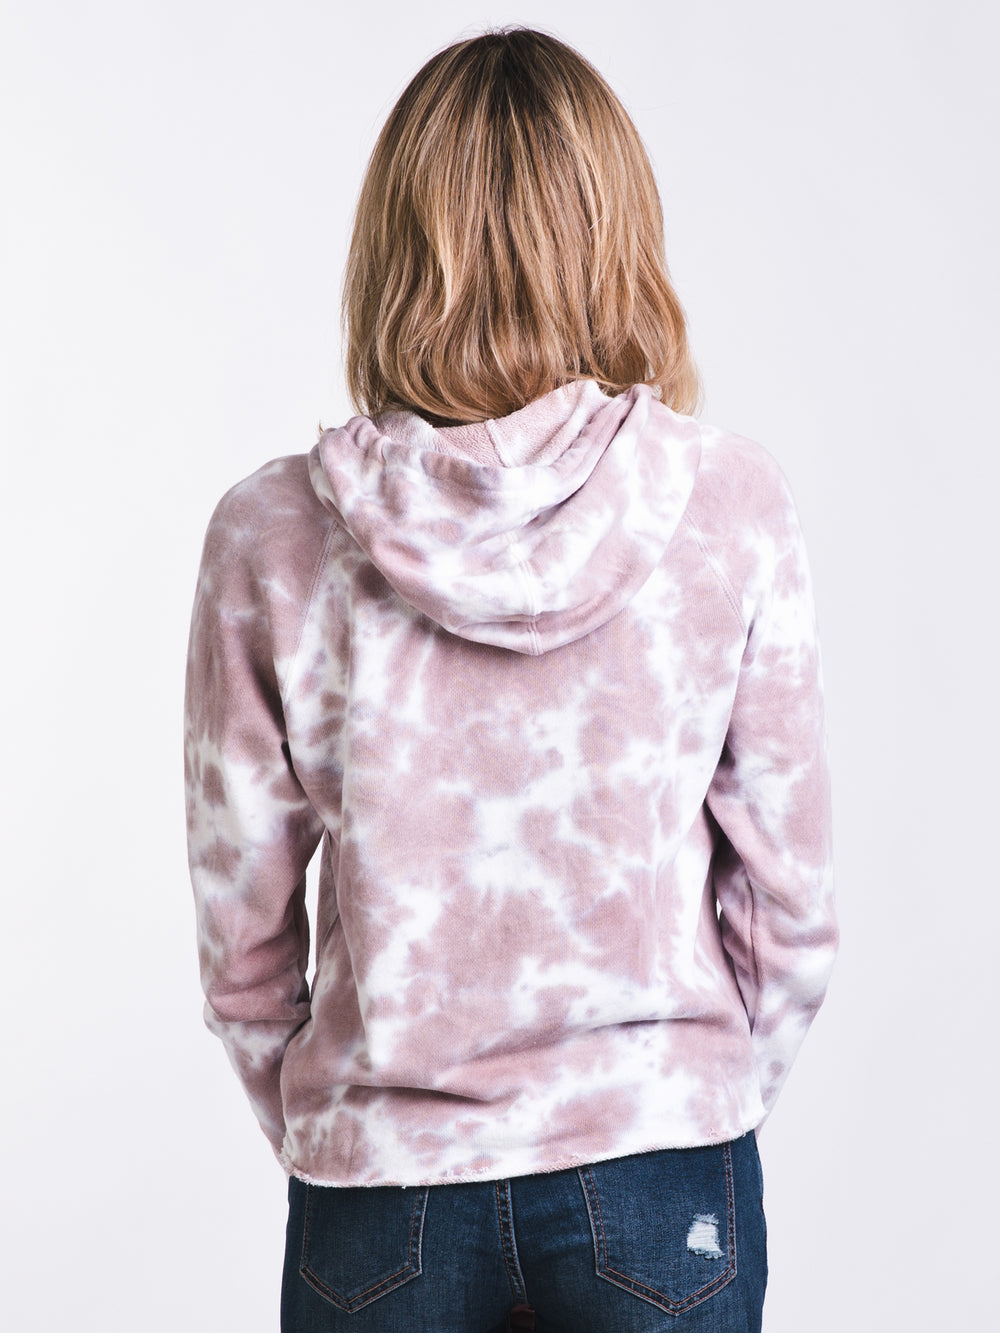 67fd6f22 WOMENS SMALL RVCA TIE DYE PULLOVER HOODY - CLEARANCE